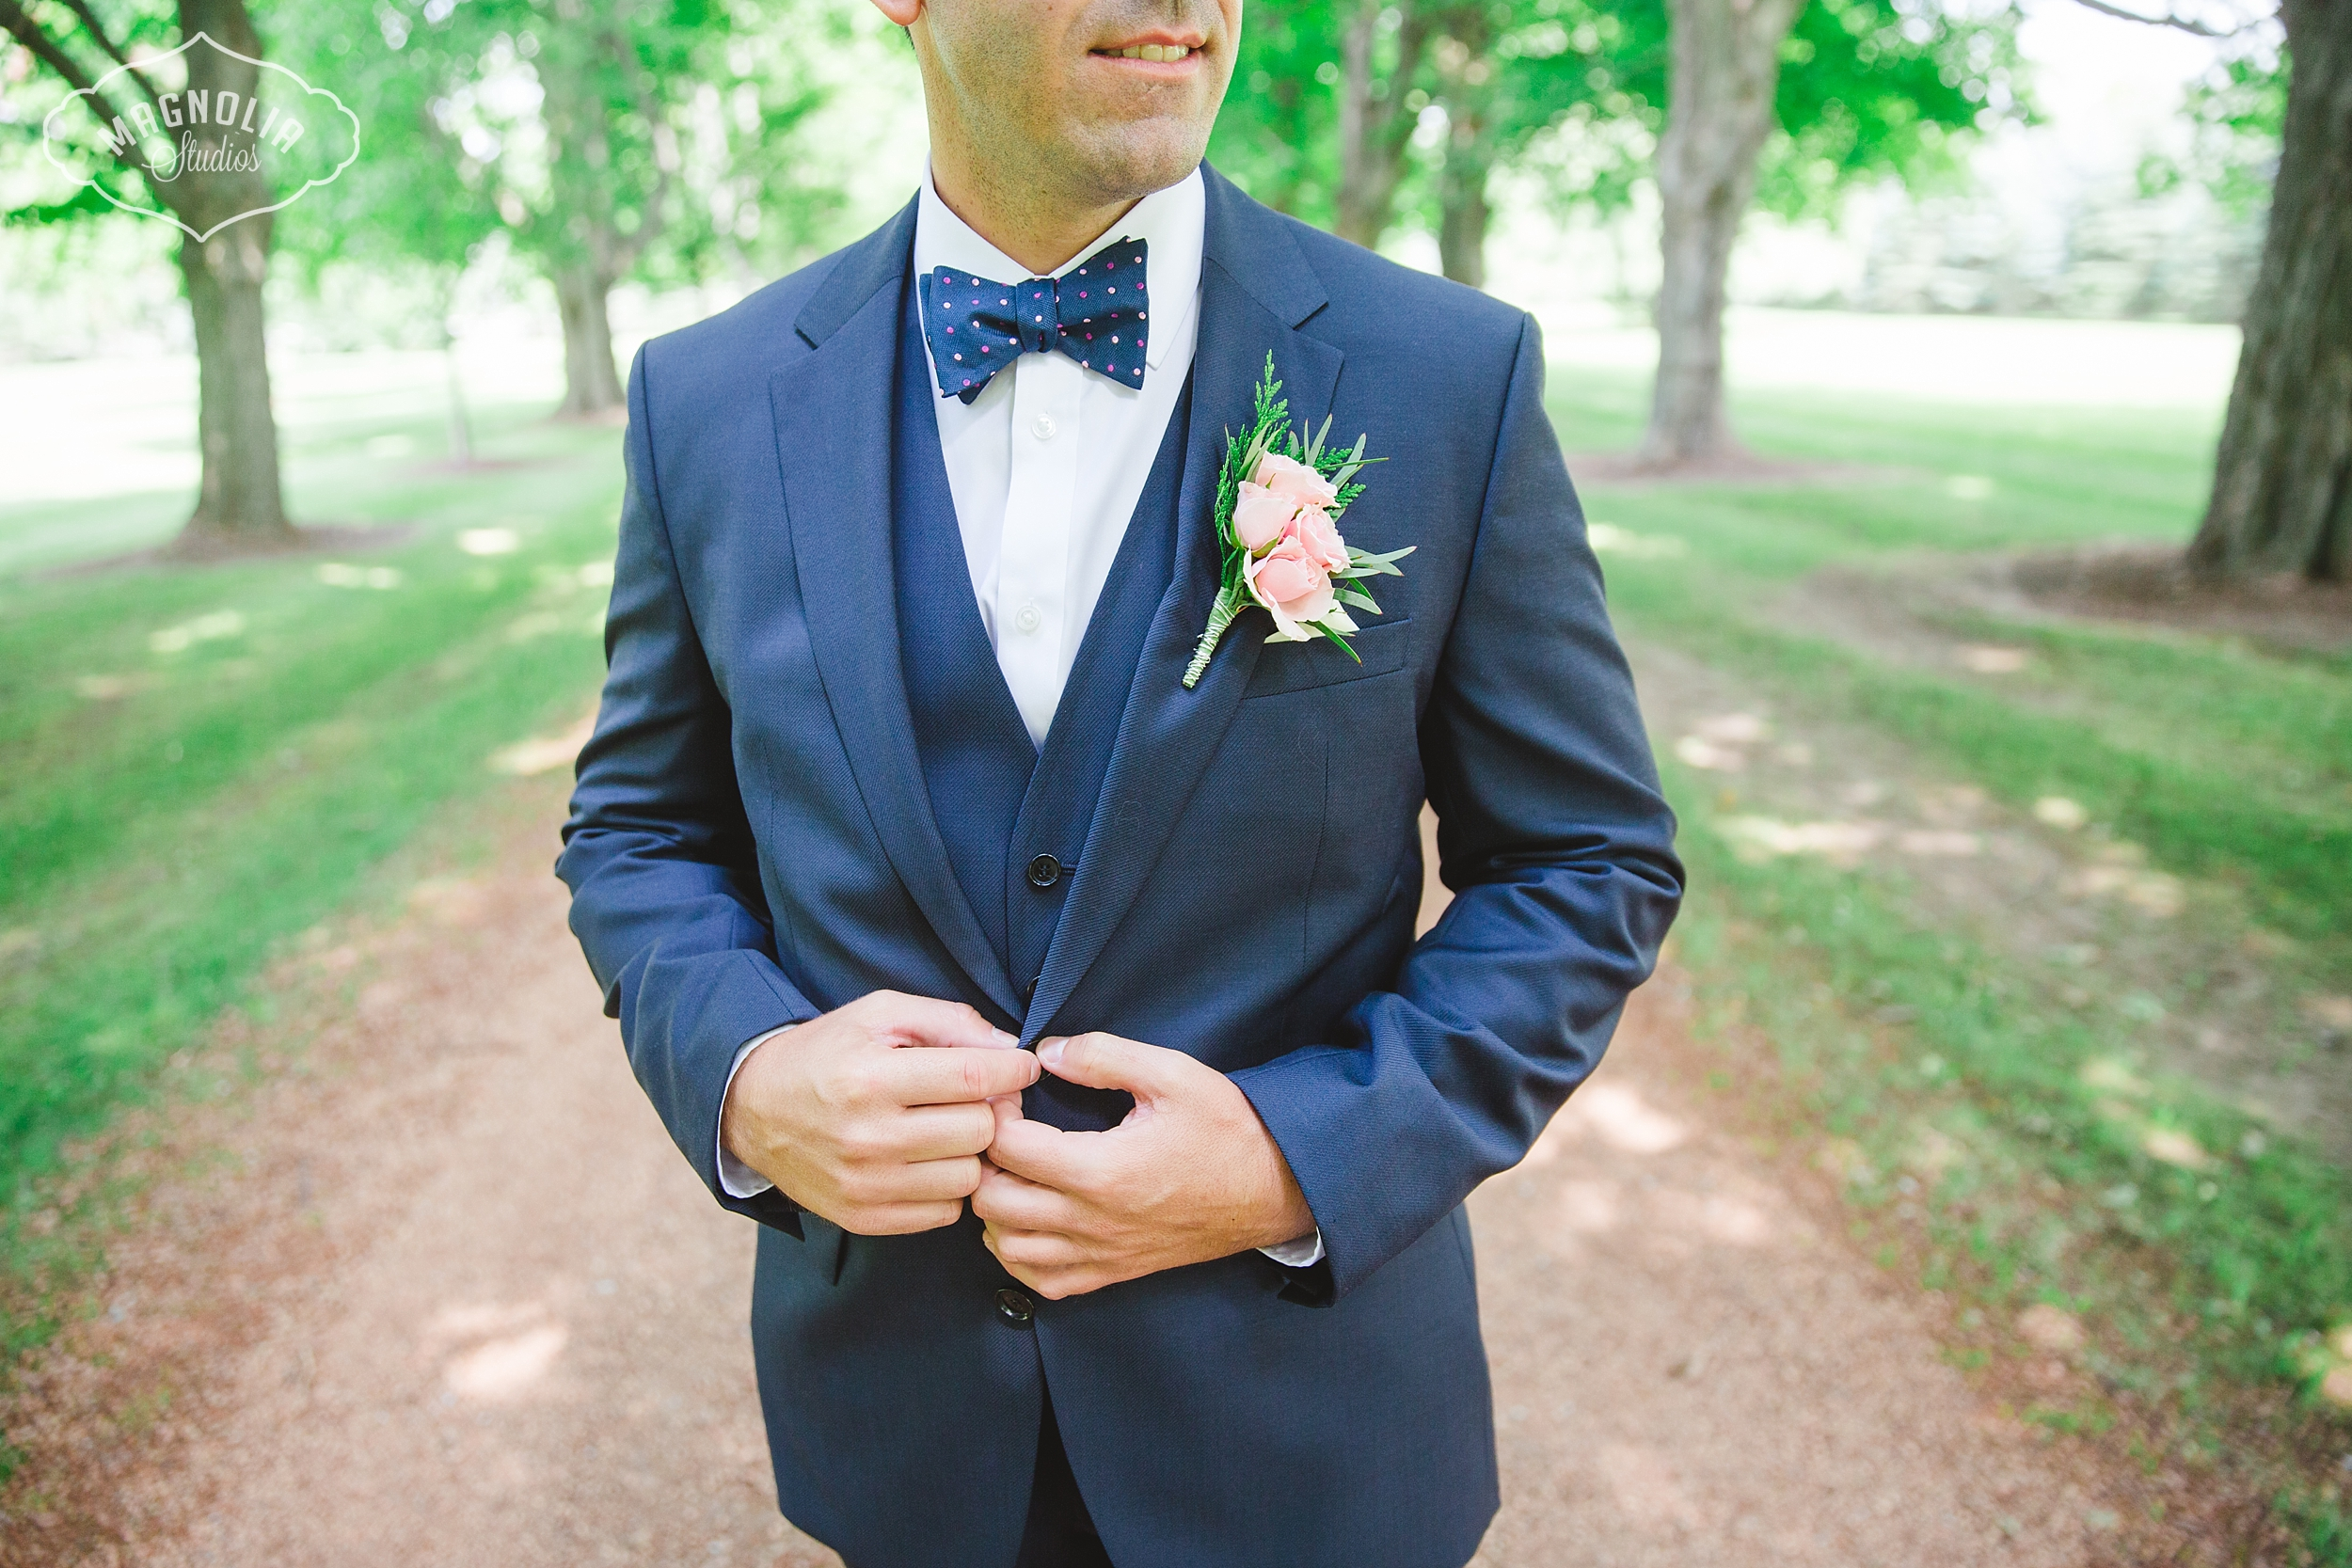 Hugo boss Tuxedo for wedding